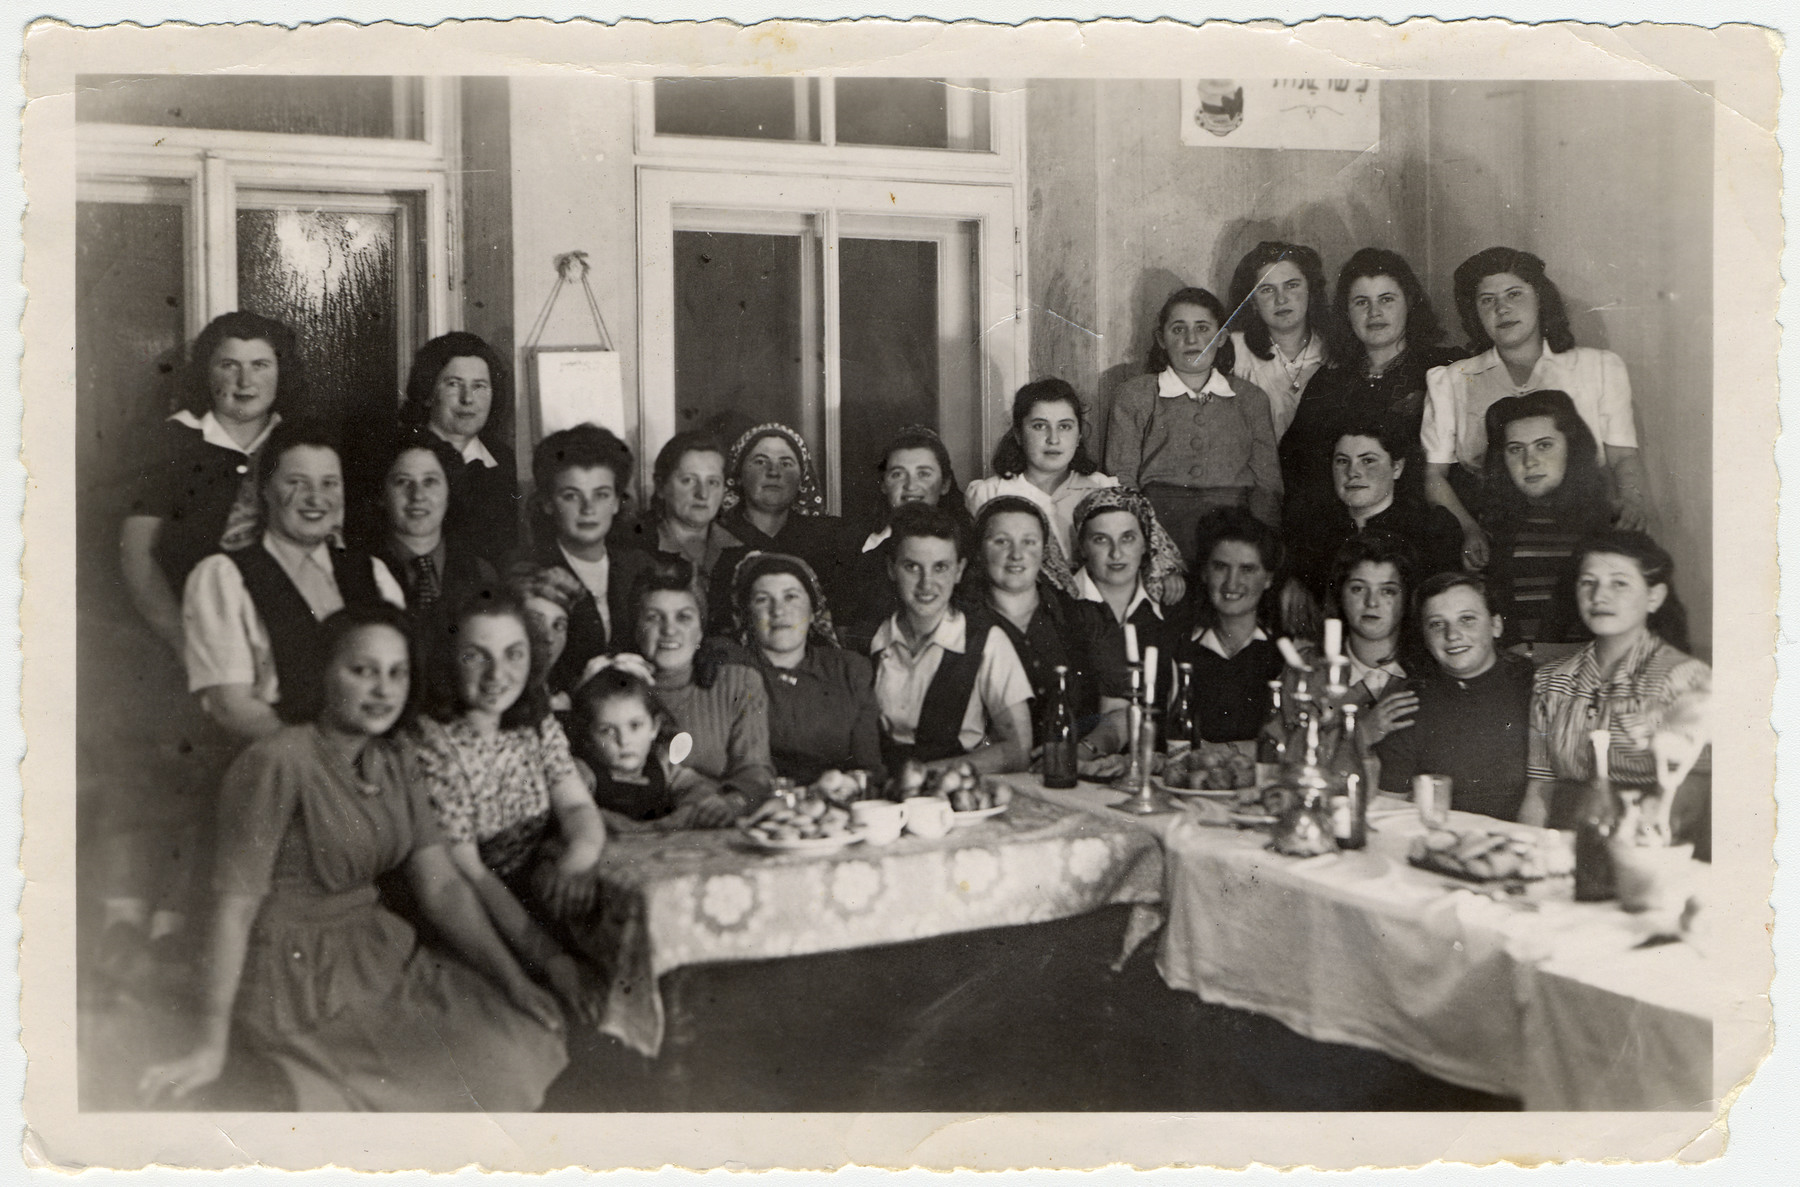 <p>Pho­to of Bnos Agu­dath Israel in the Bad Gad­stein Dis­placed Per­sons camp. Reli­gious Jew­ish women gath­er around a&nbsp;table set for the Sab­bath or a&nbsp;hol­i­day. Cour­tesy of Esther Klug and the Unit­ed States Holo­caust Memo­r­i­al&nbsp;Museum.</p>